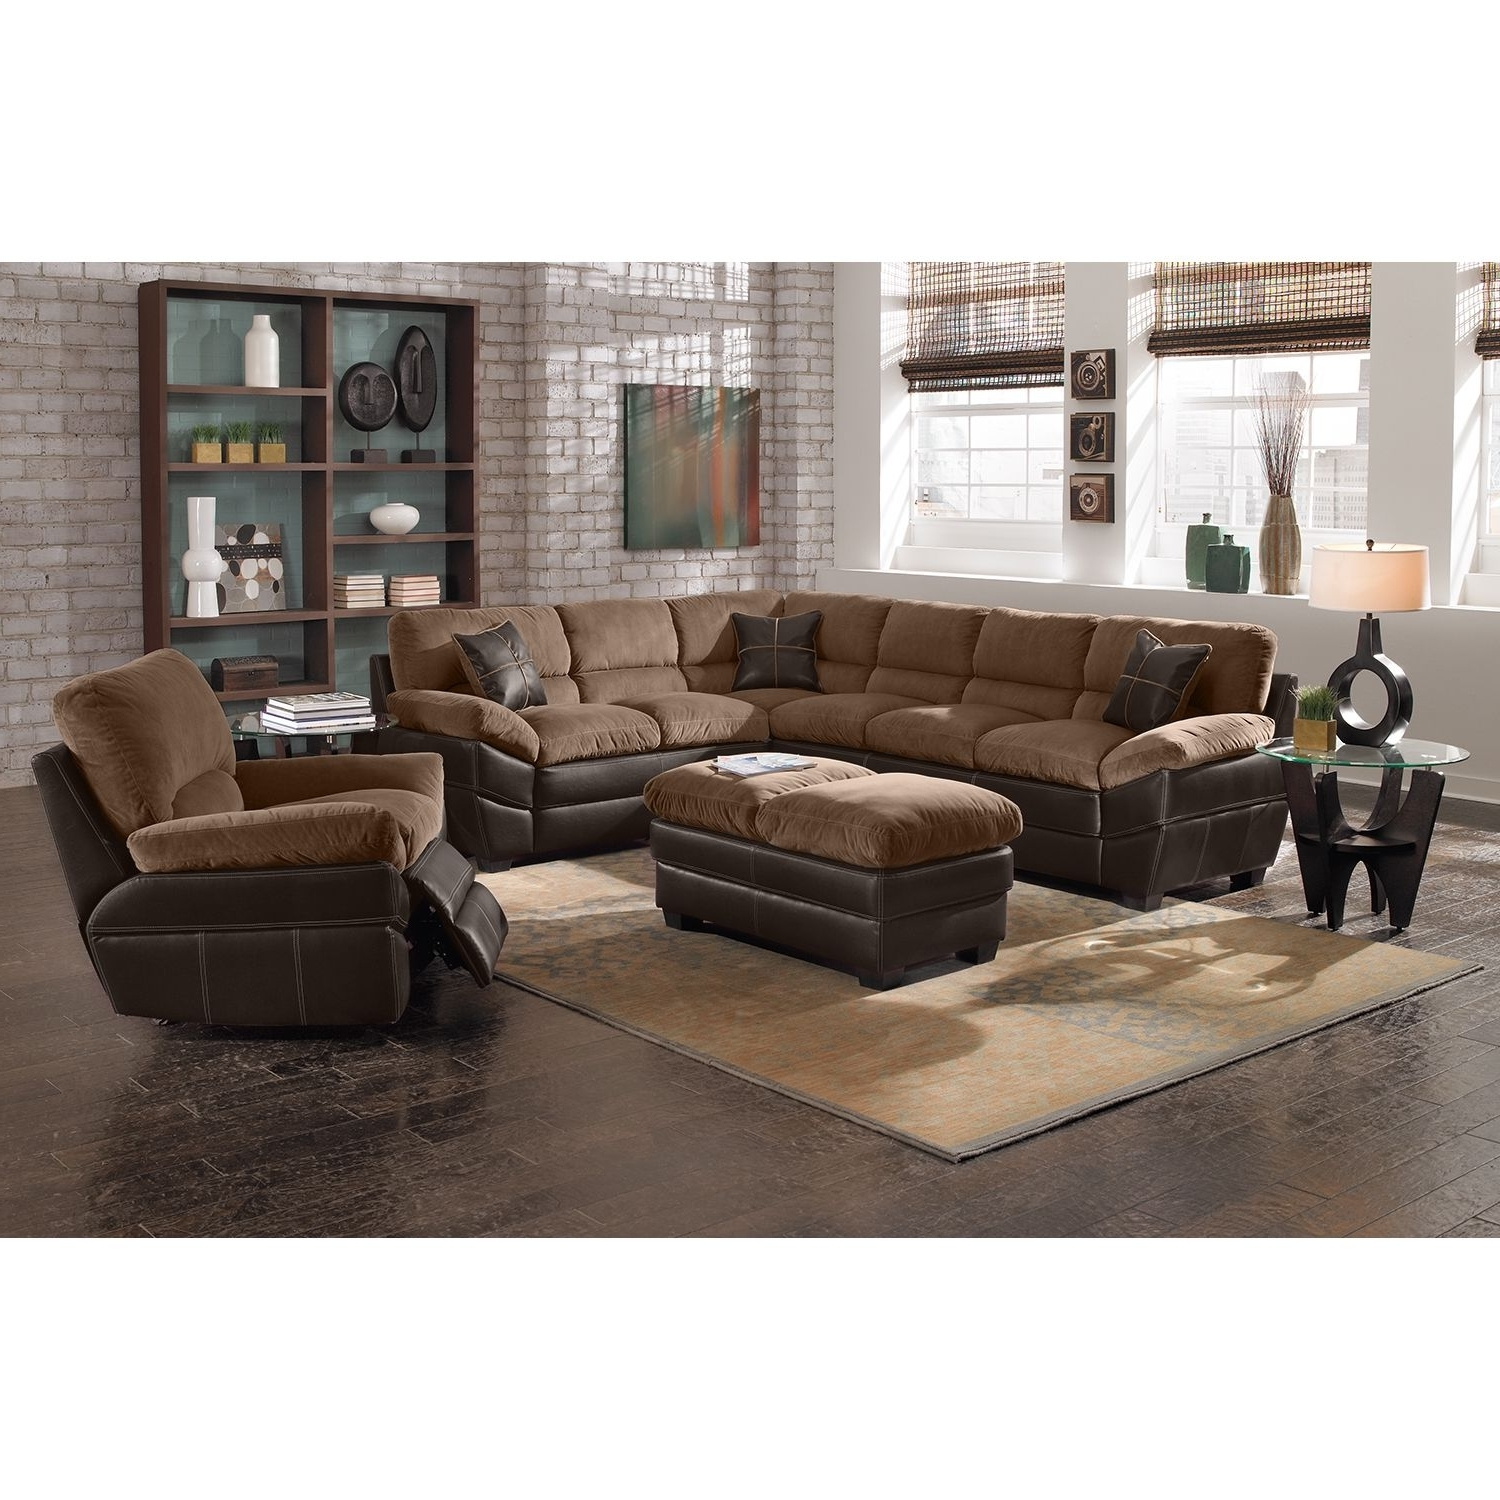 Well Known Value City Sectional Sofas Regarding Chandler Upholstery 2 Pc (View 5 of 20)